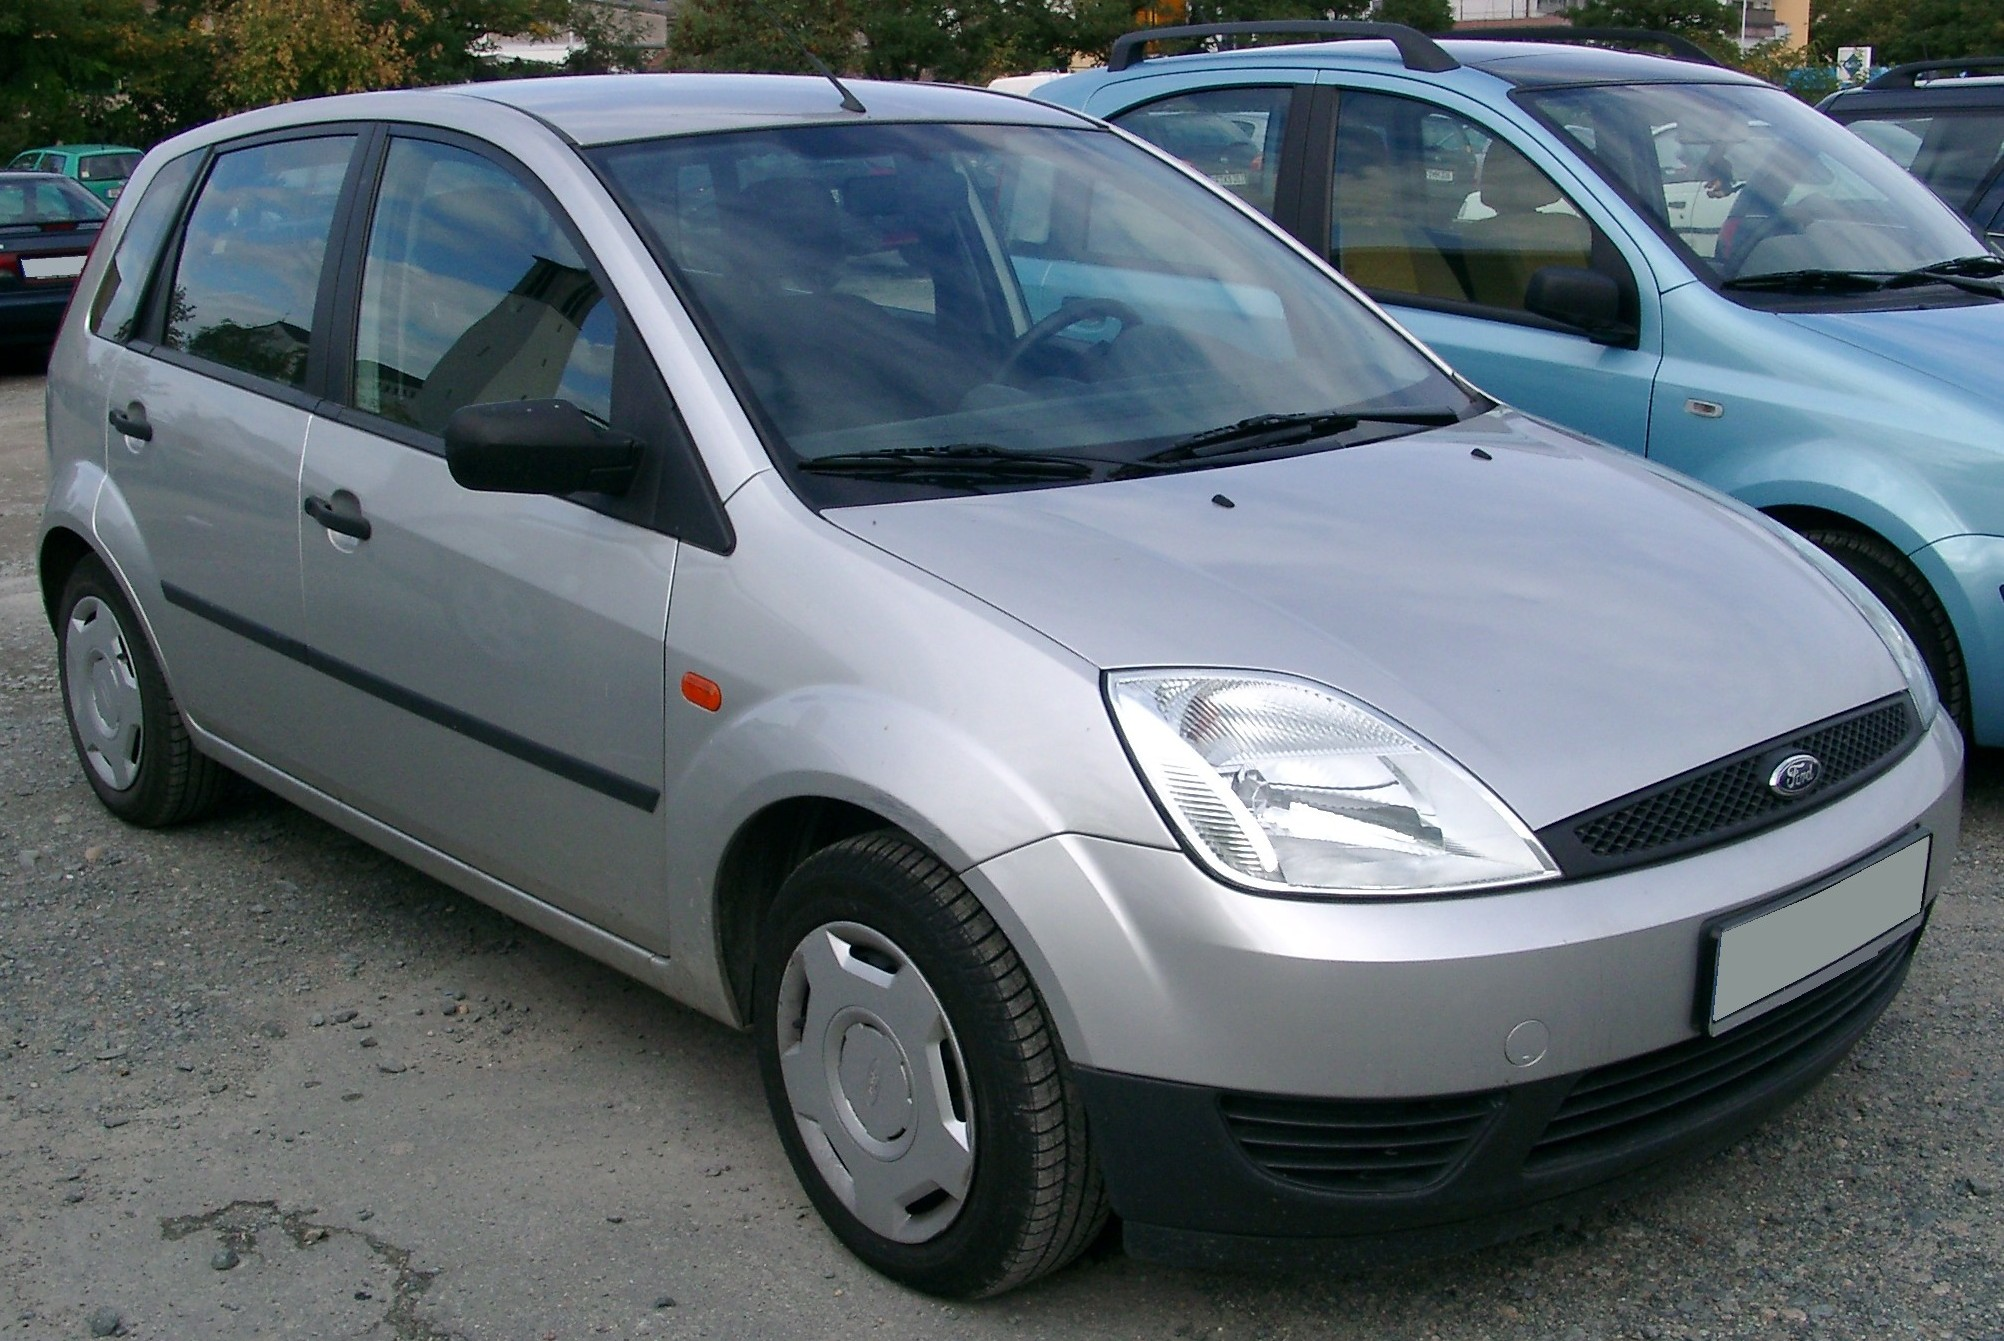 Ford_Fiesta_MK6_front_20070926